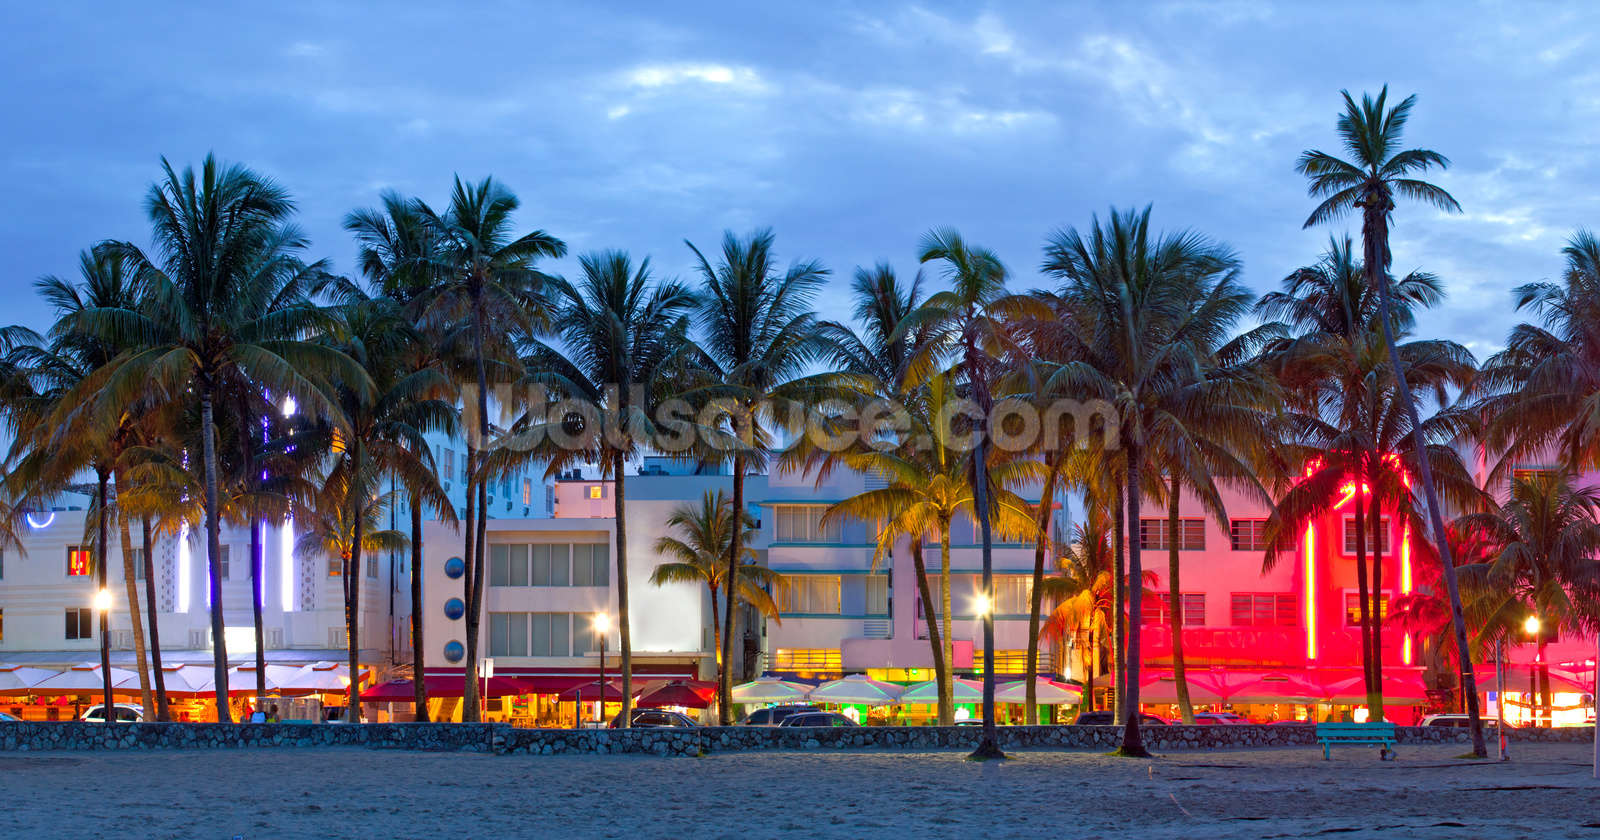 Miami Beach With Palm Trees Mural Wallpaper